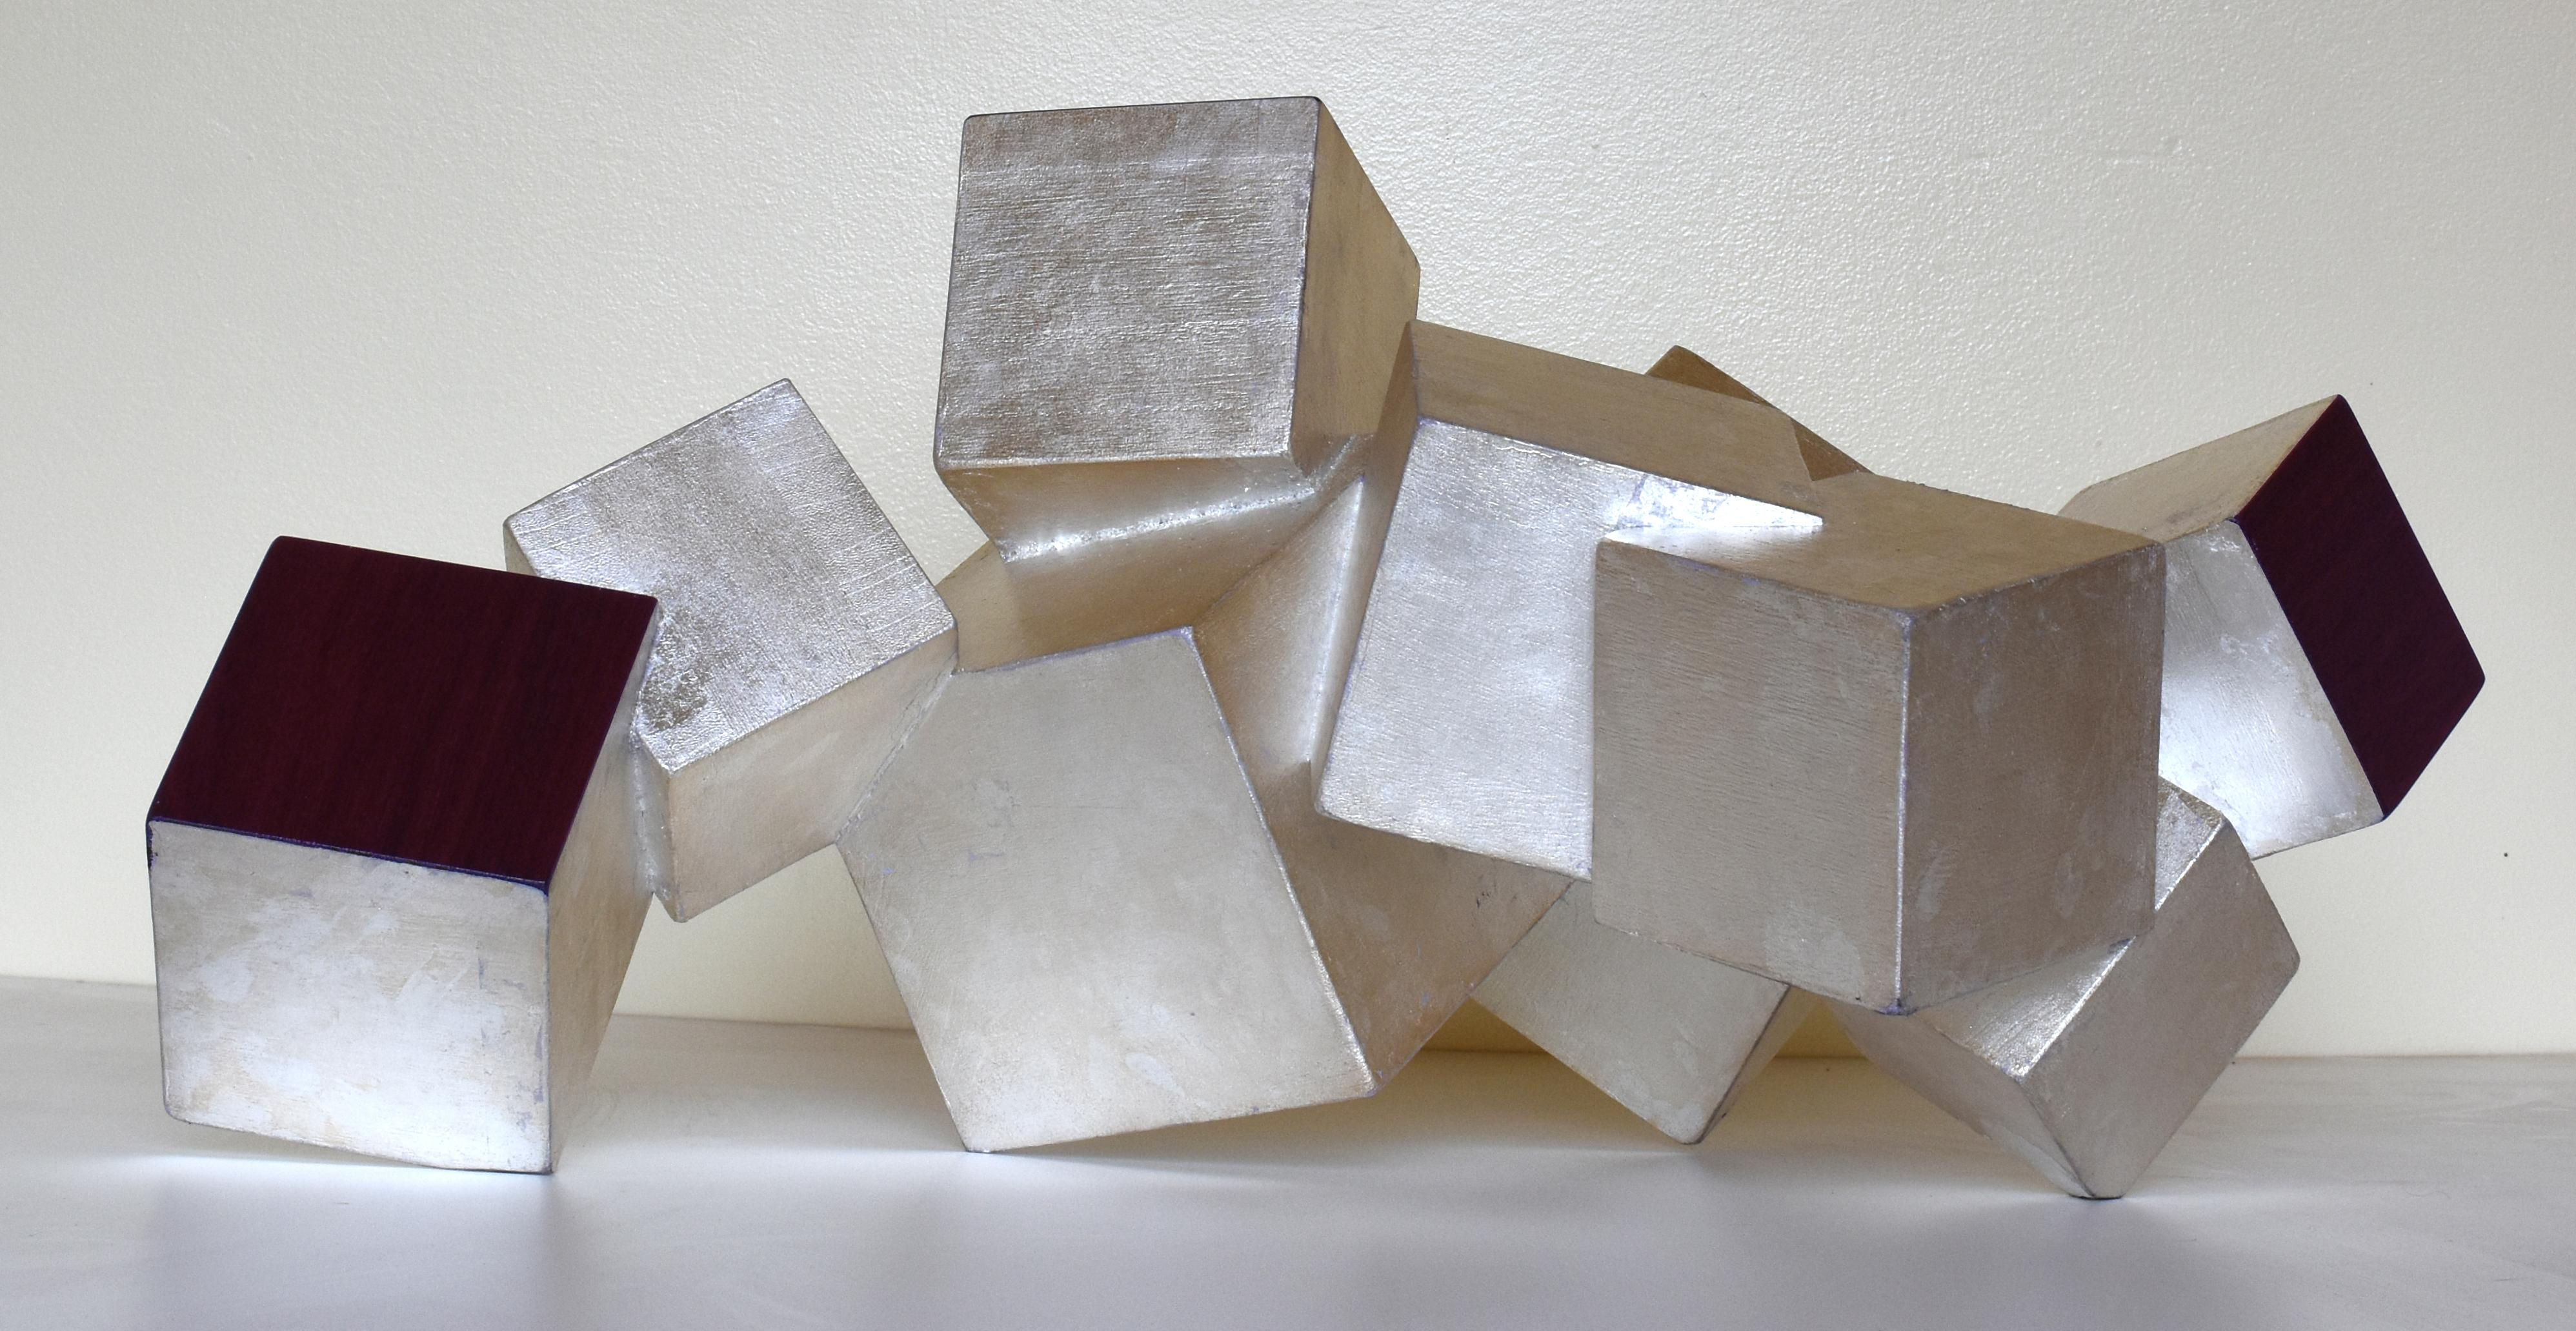 Sterling Silver and Purpleheart Pyrite (wood tabletop sculpture, metallic, cubic